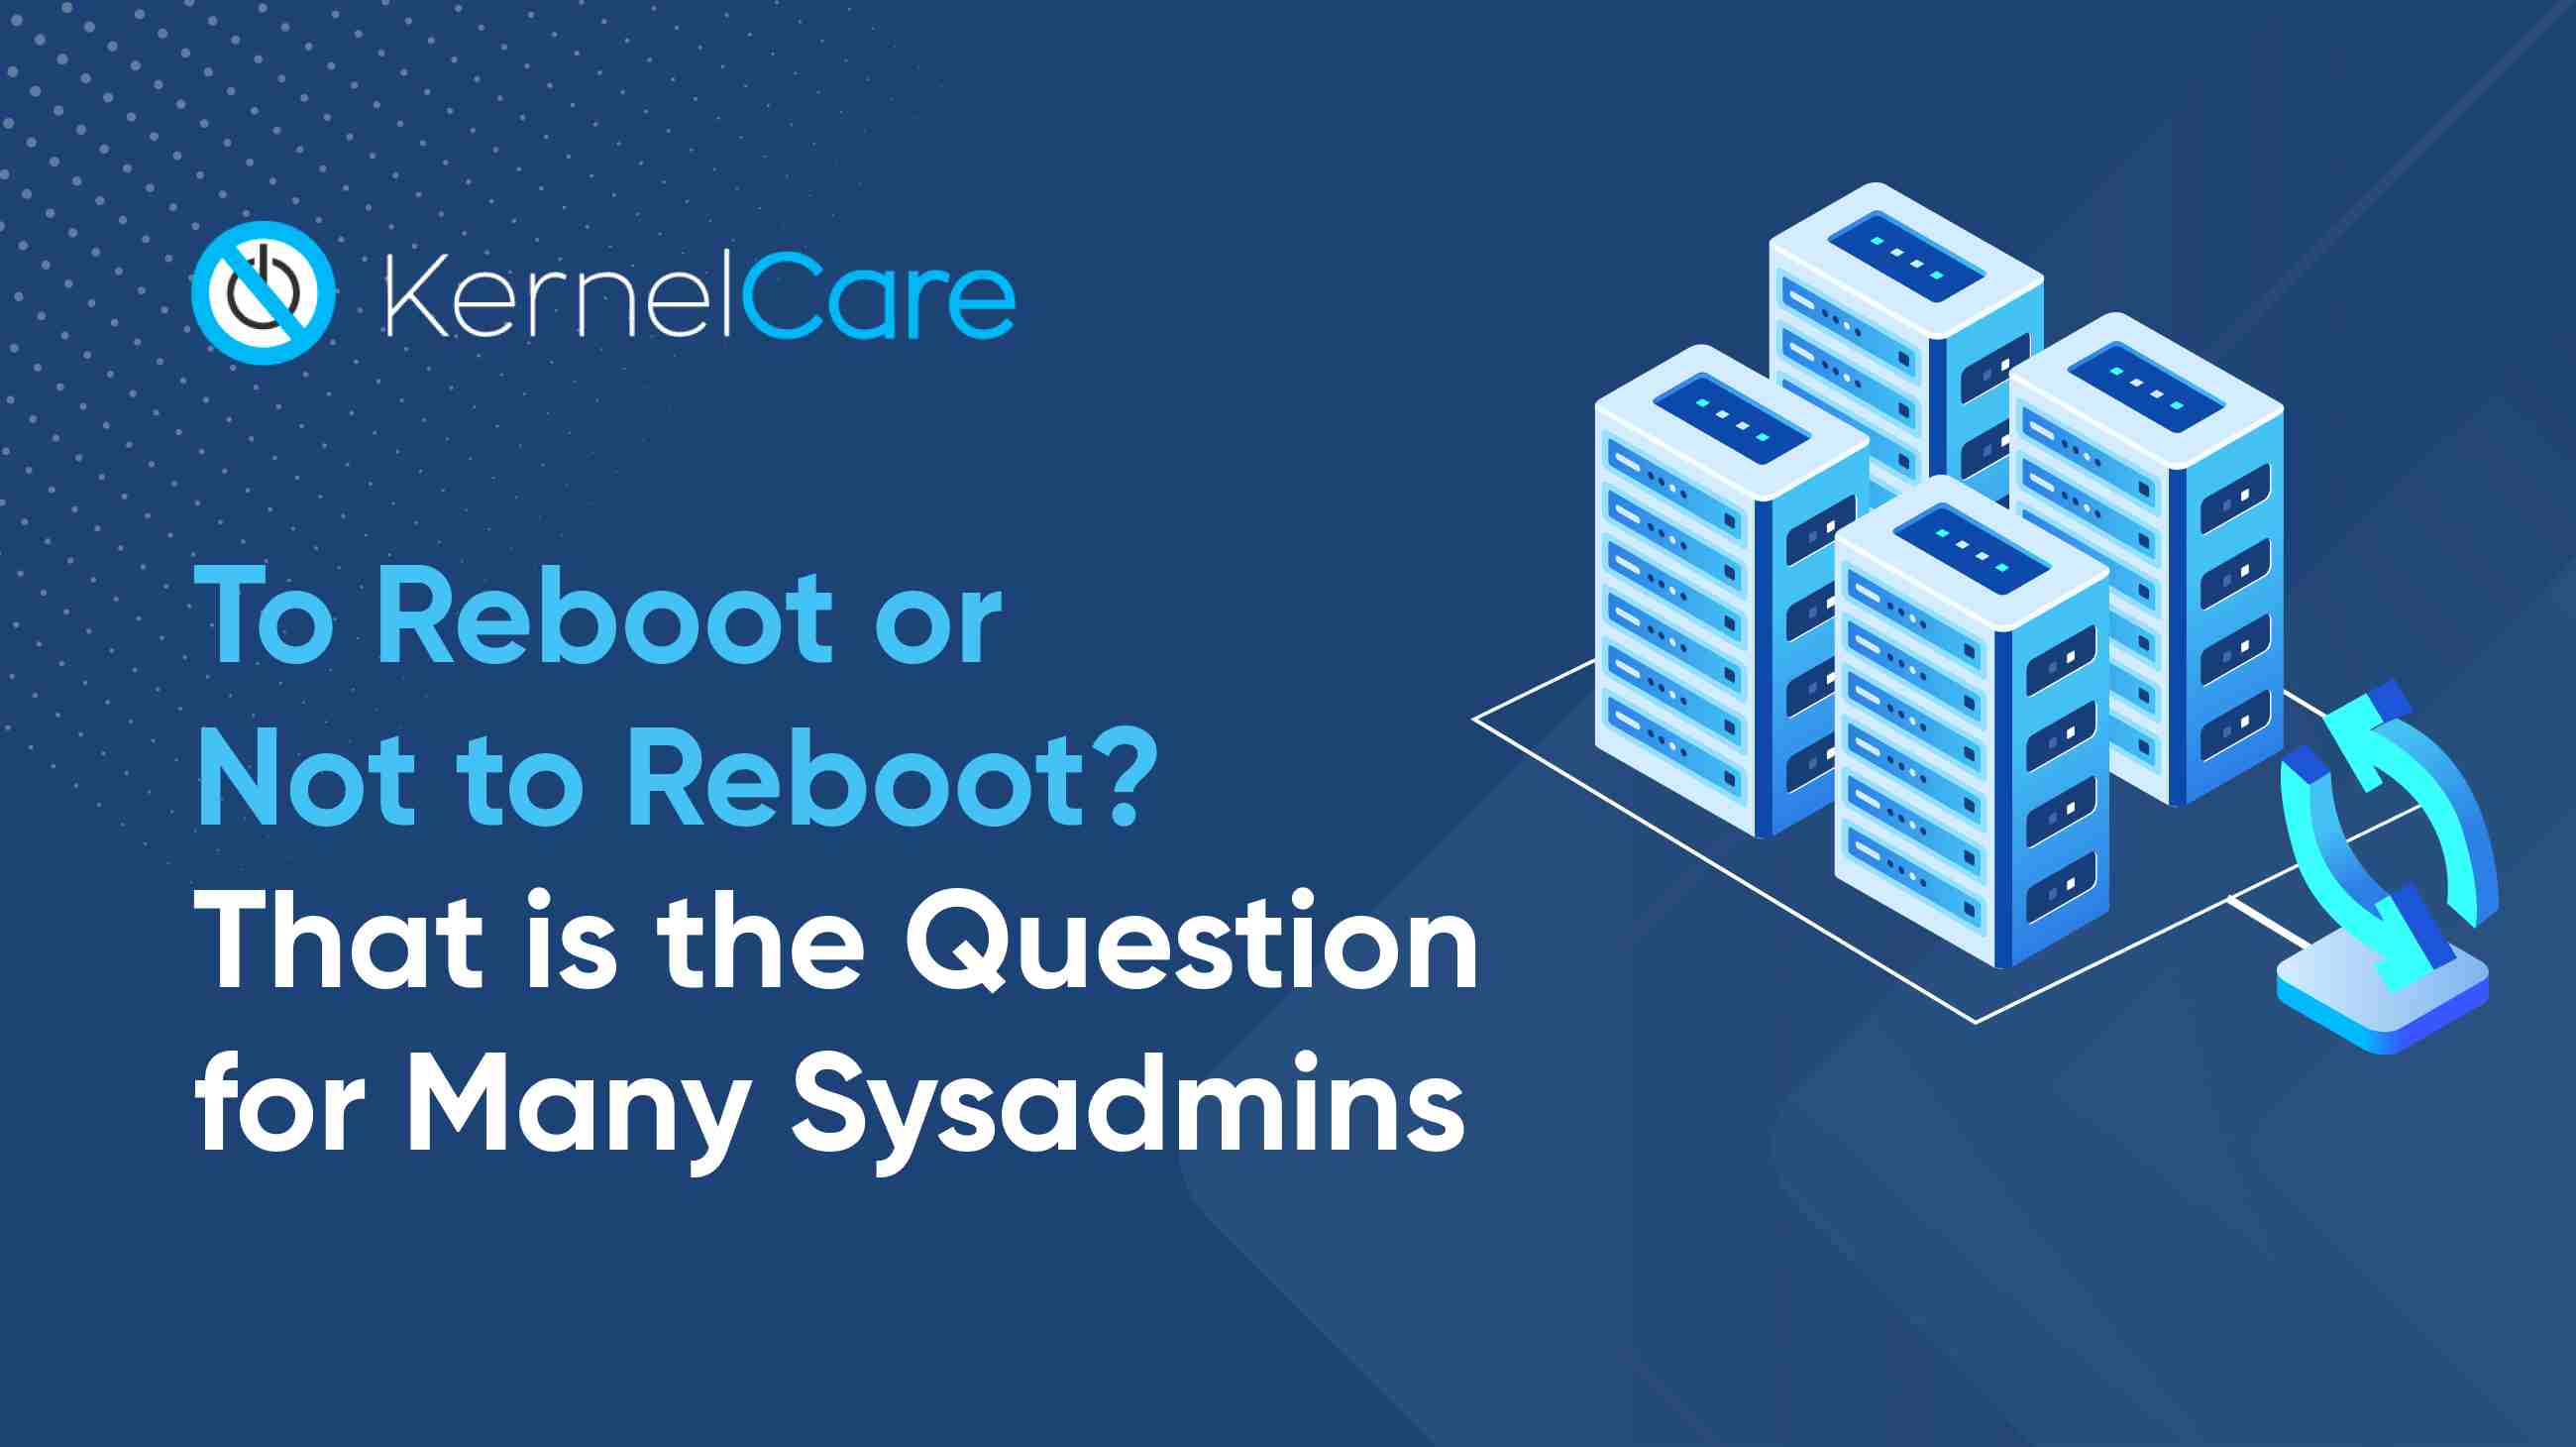 To Reboot or Not to Reboot? That is the Question for Many Sysadmins.